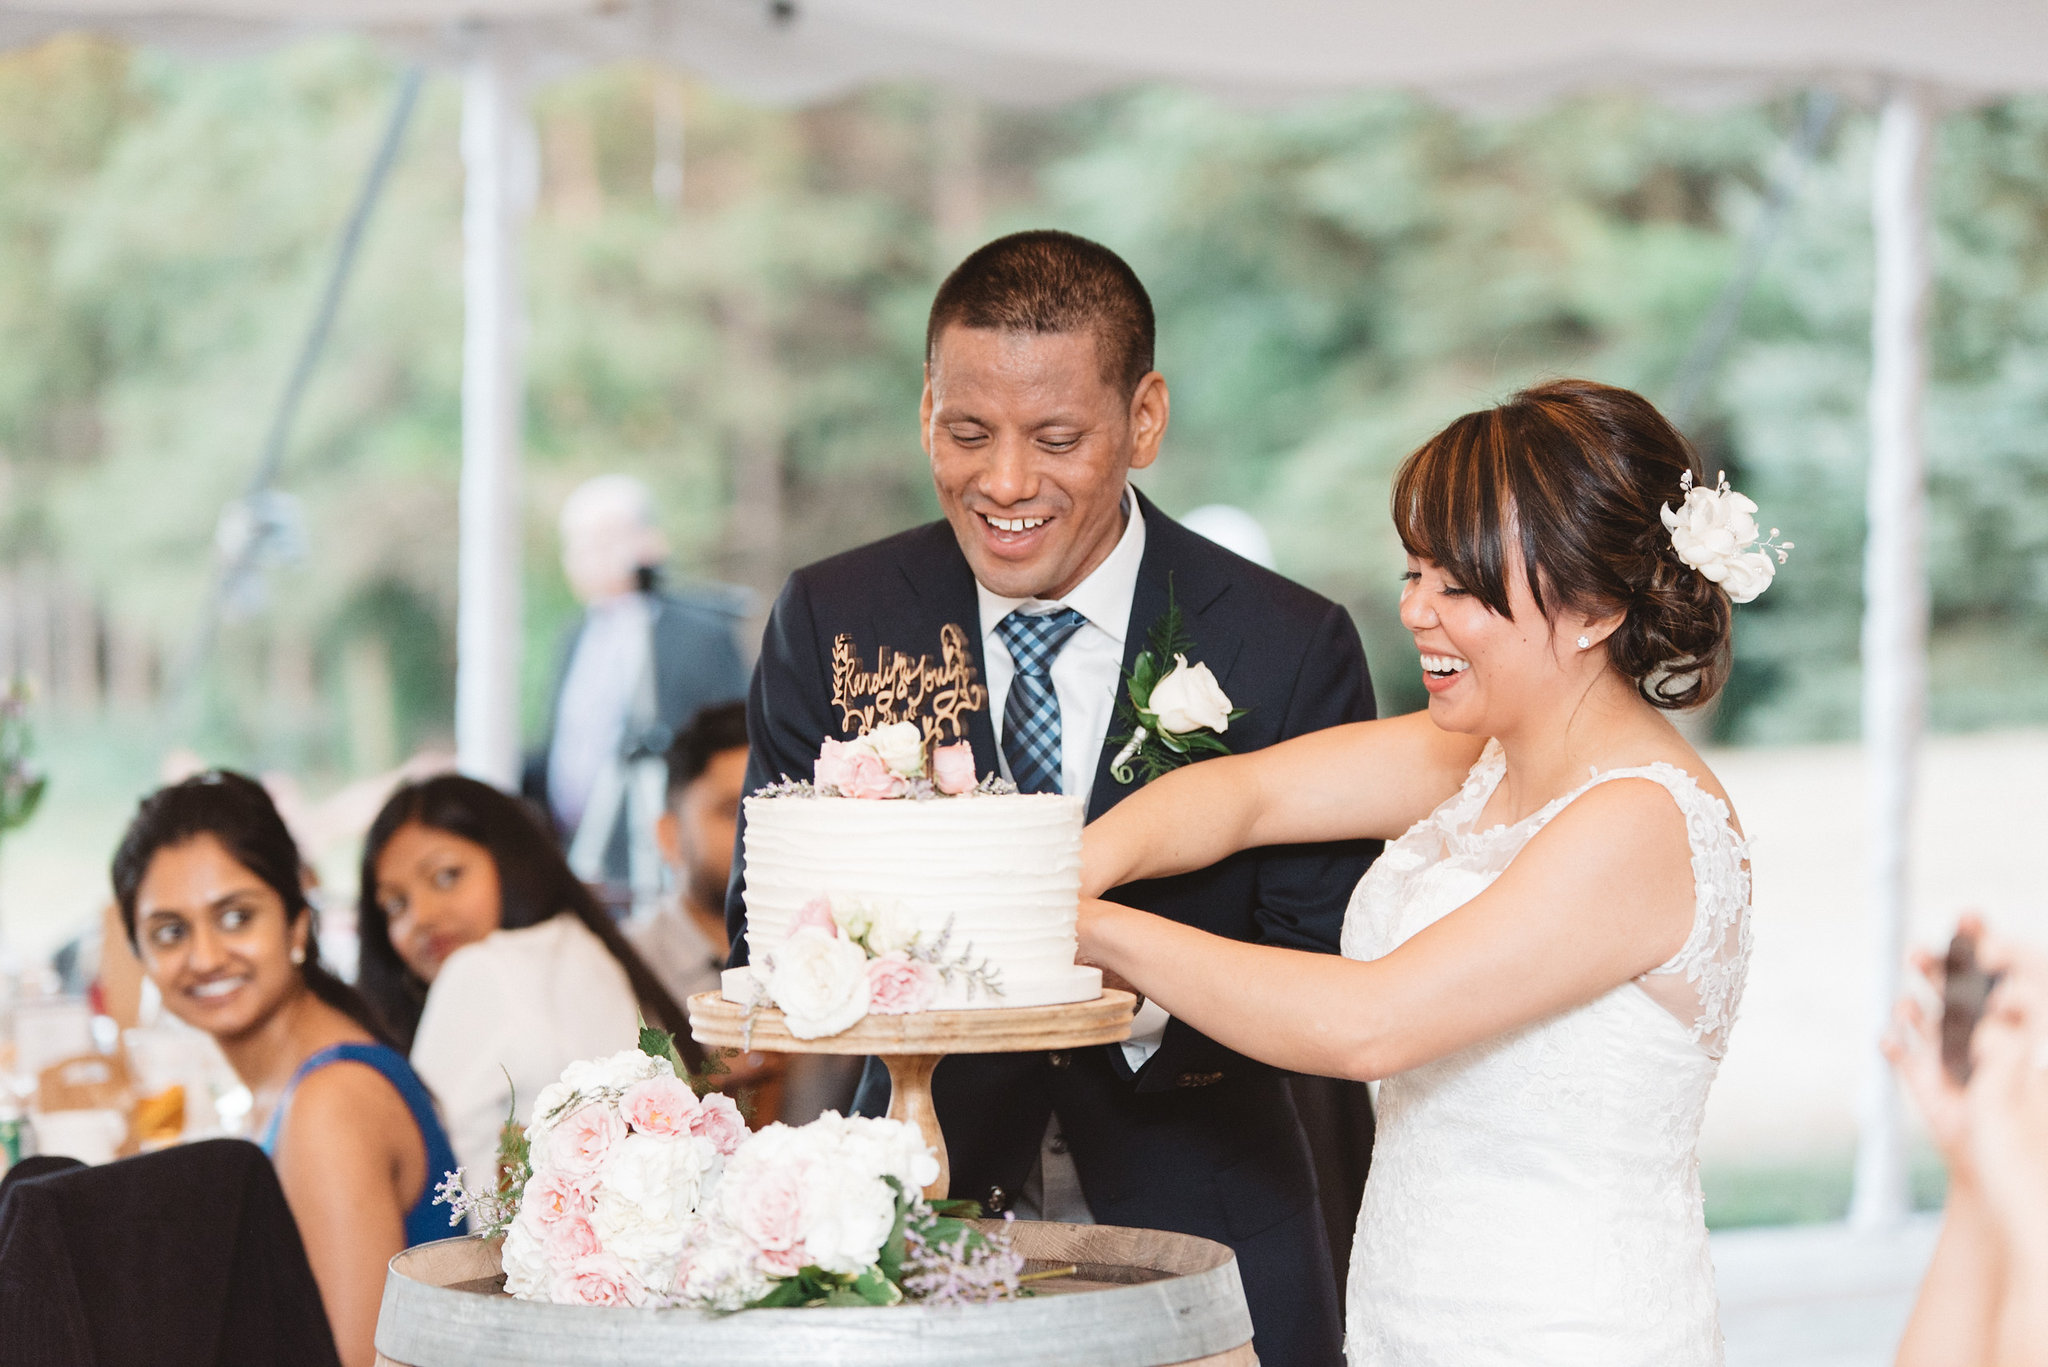 Cake Cutting Photos | Olive Photography Toronto